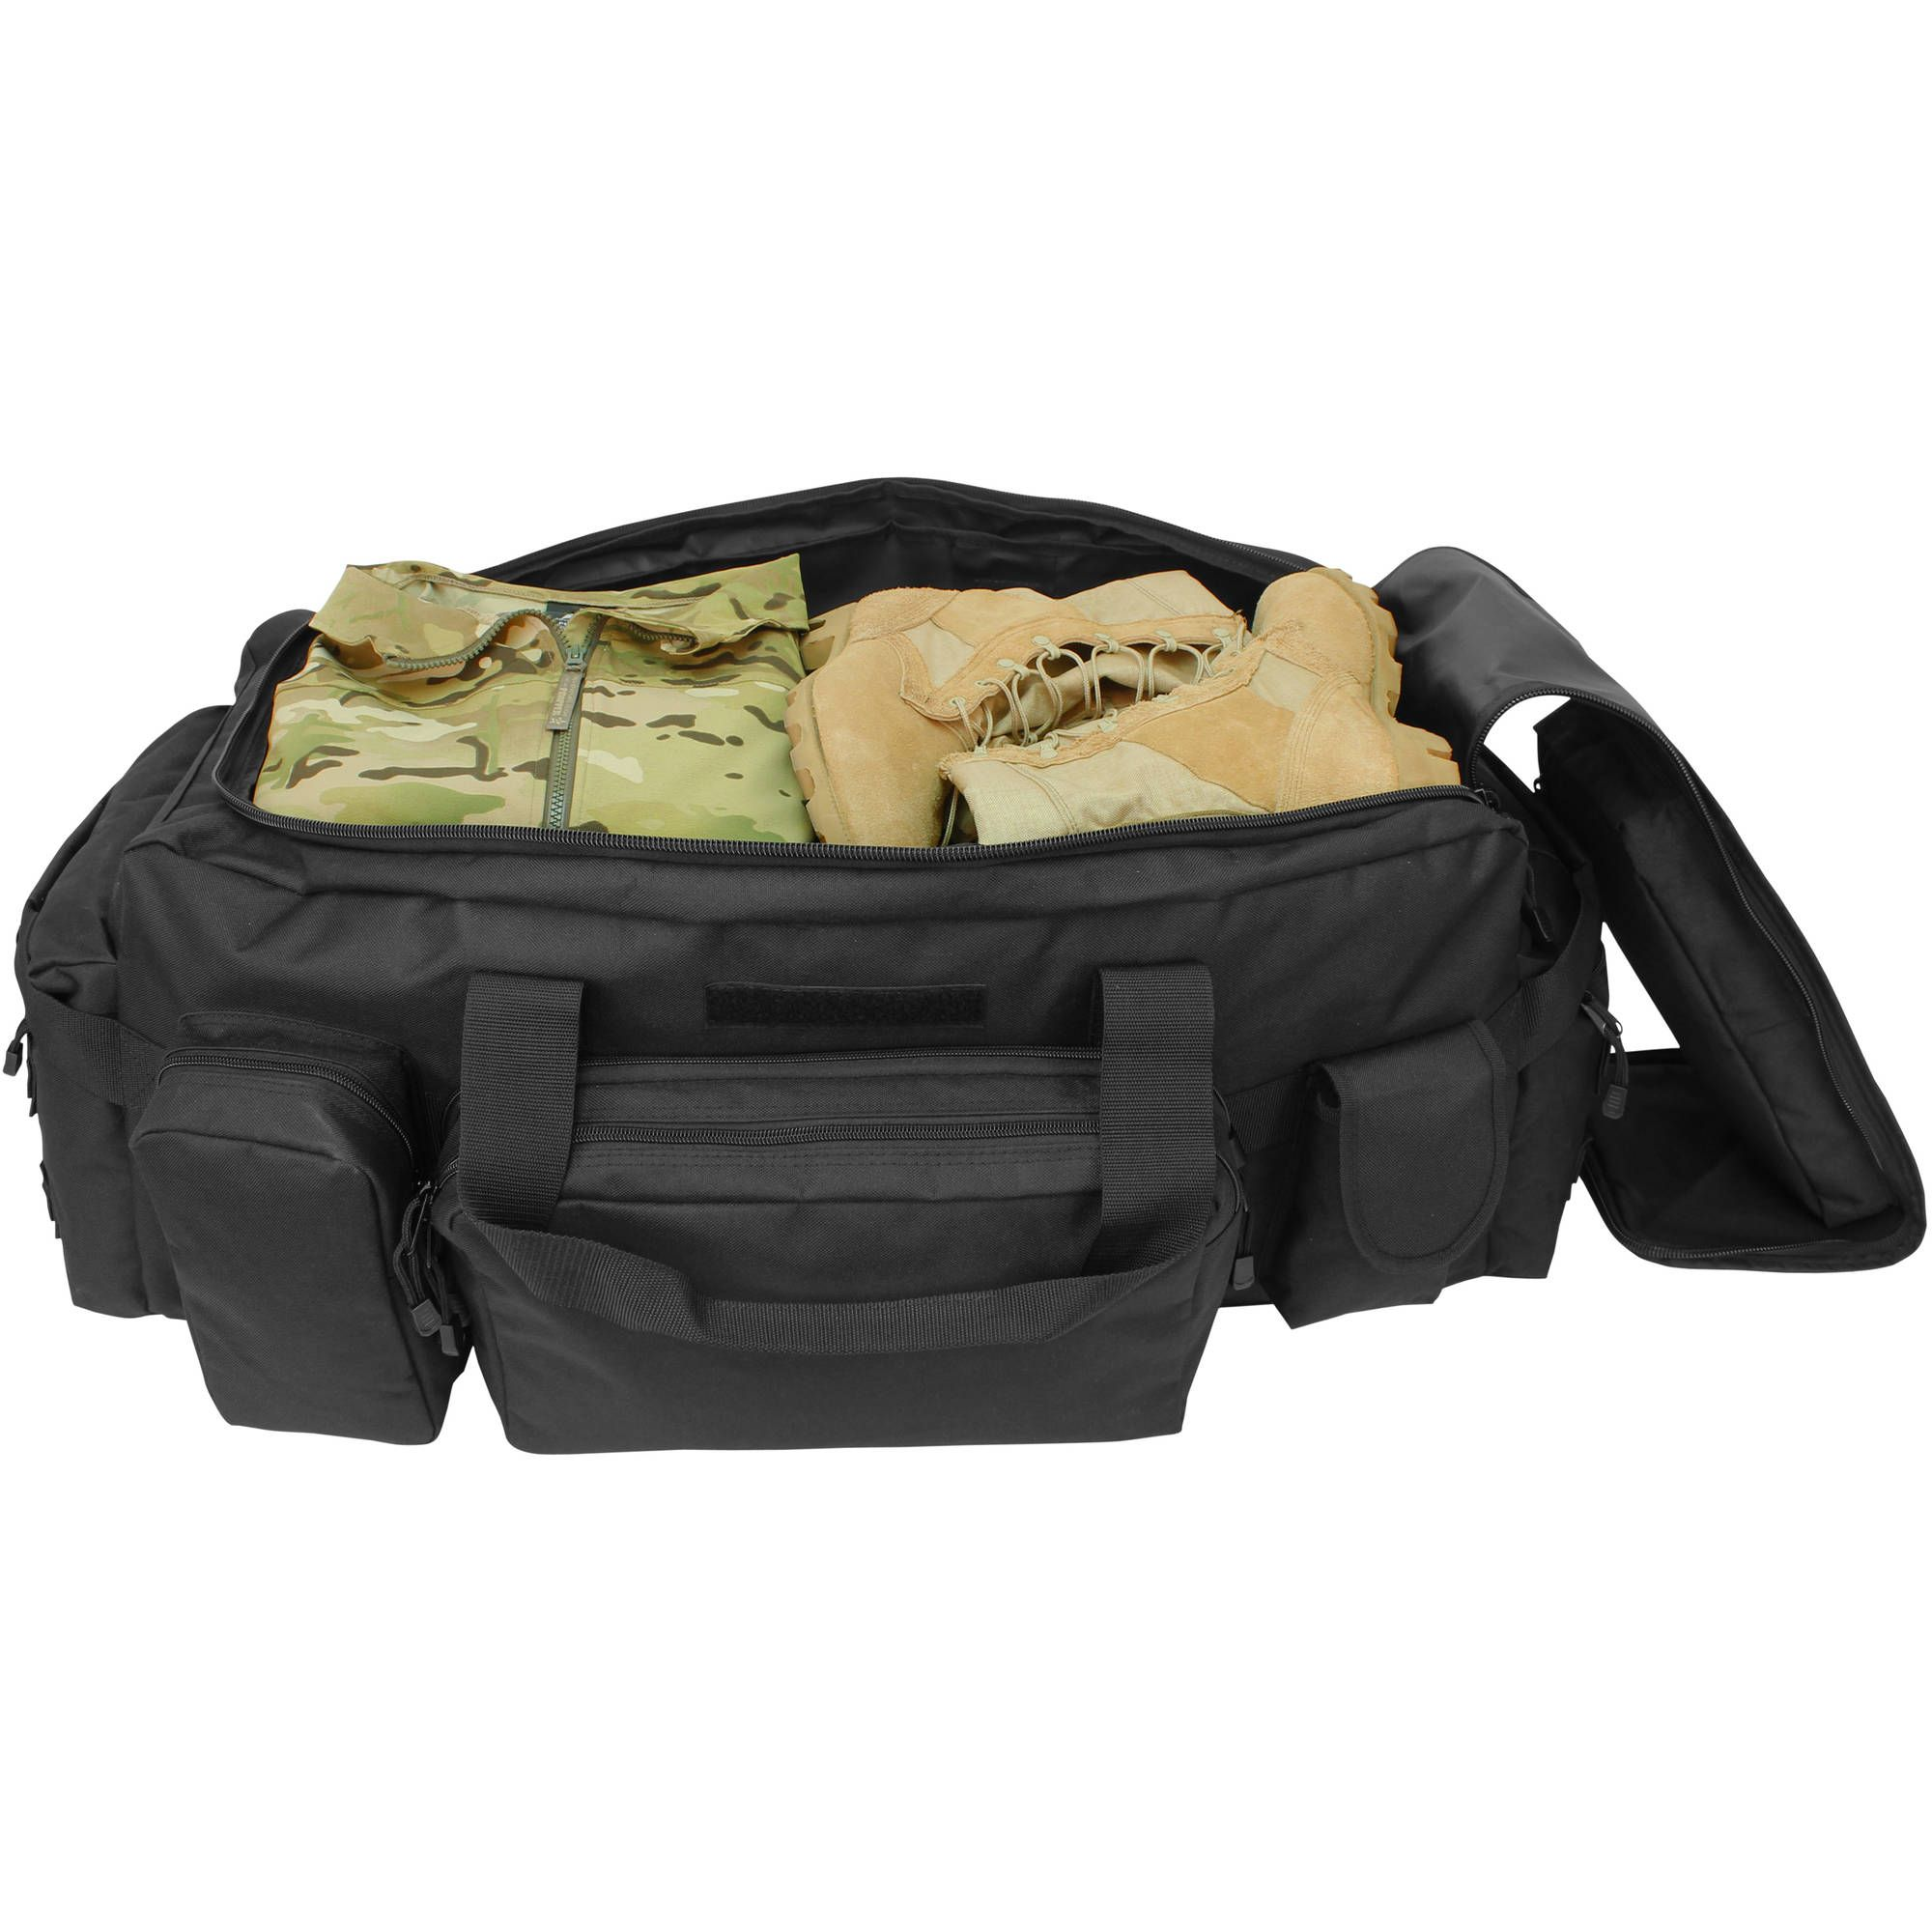 Code Alpha Airman Extra Large Duffel Backpack, Multiple